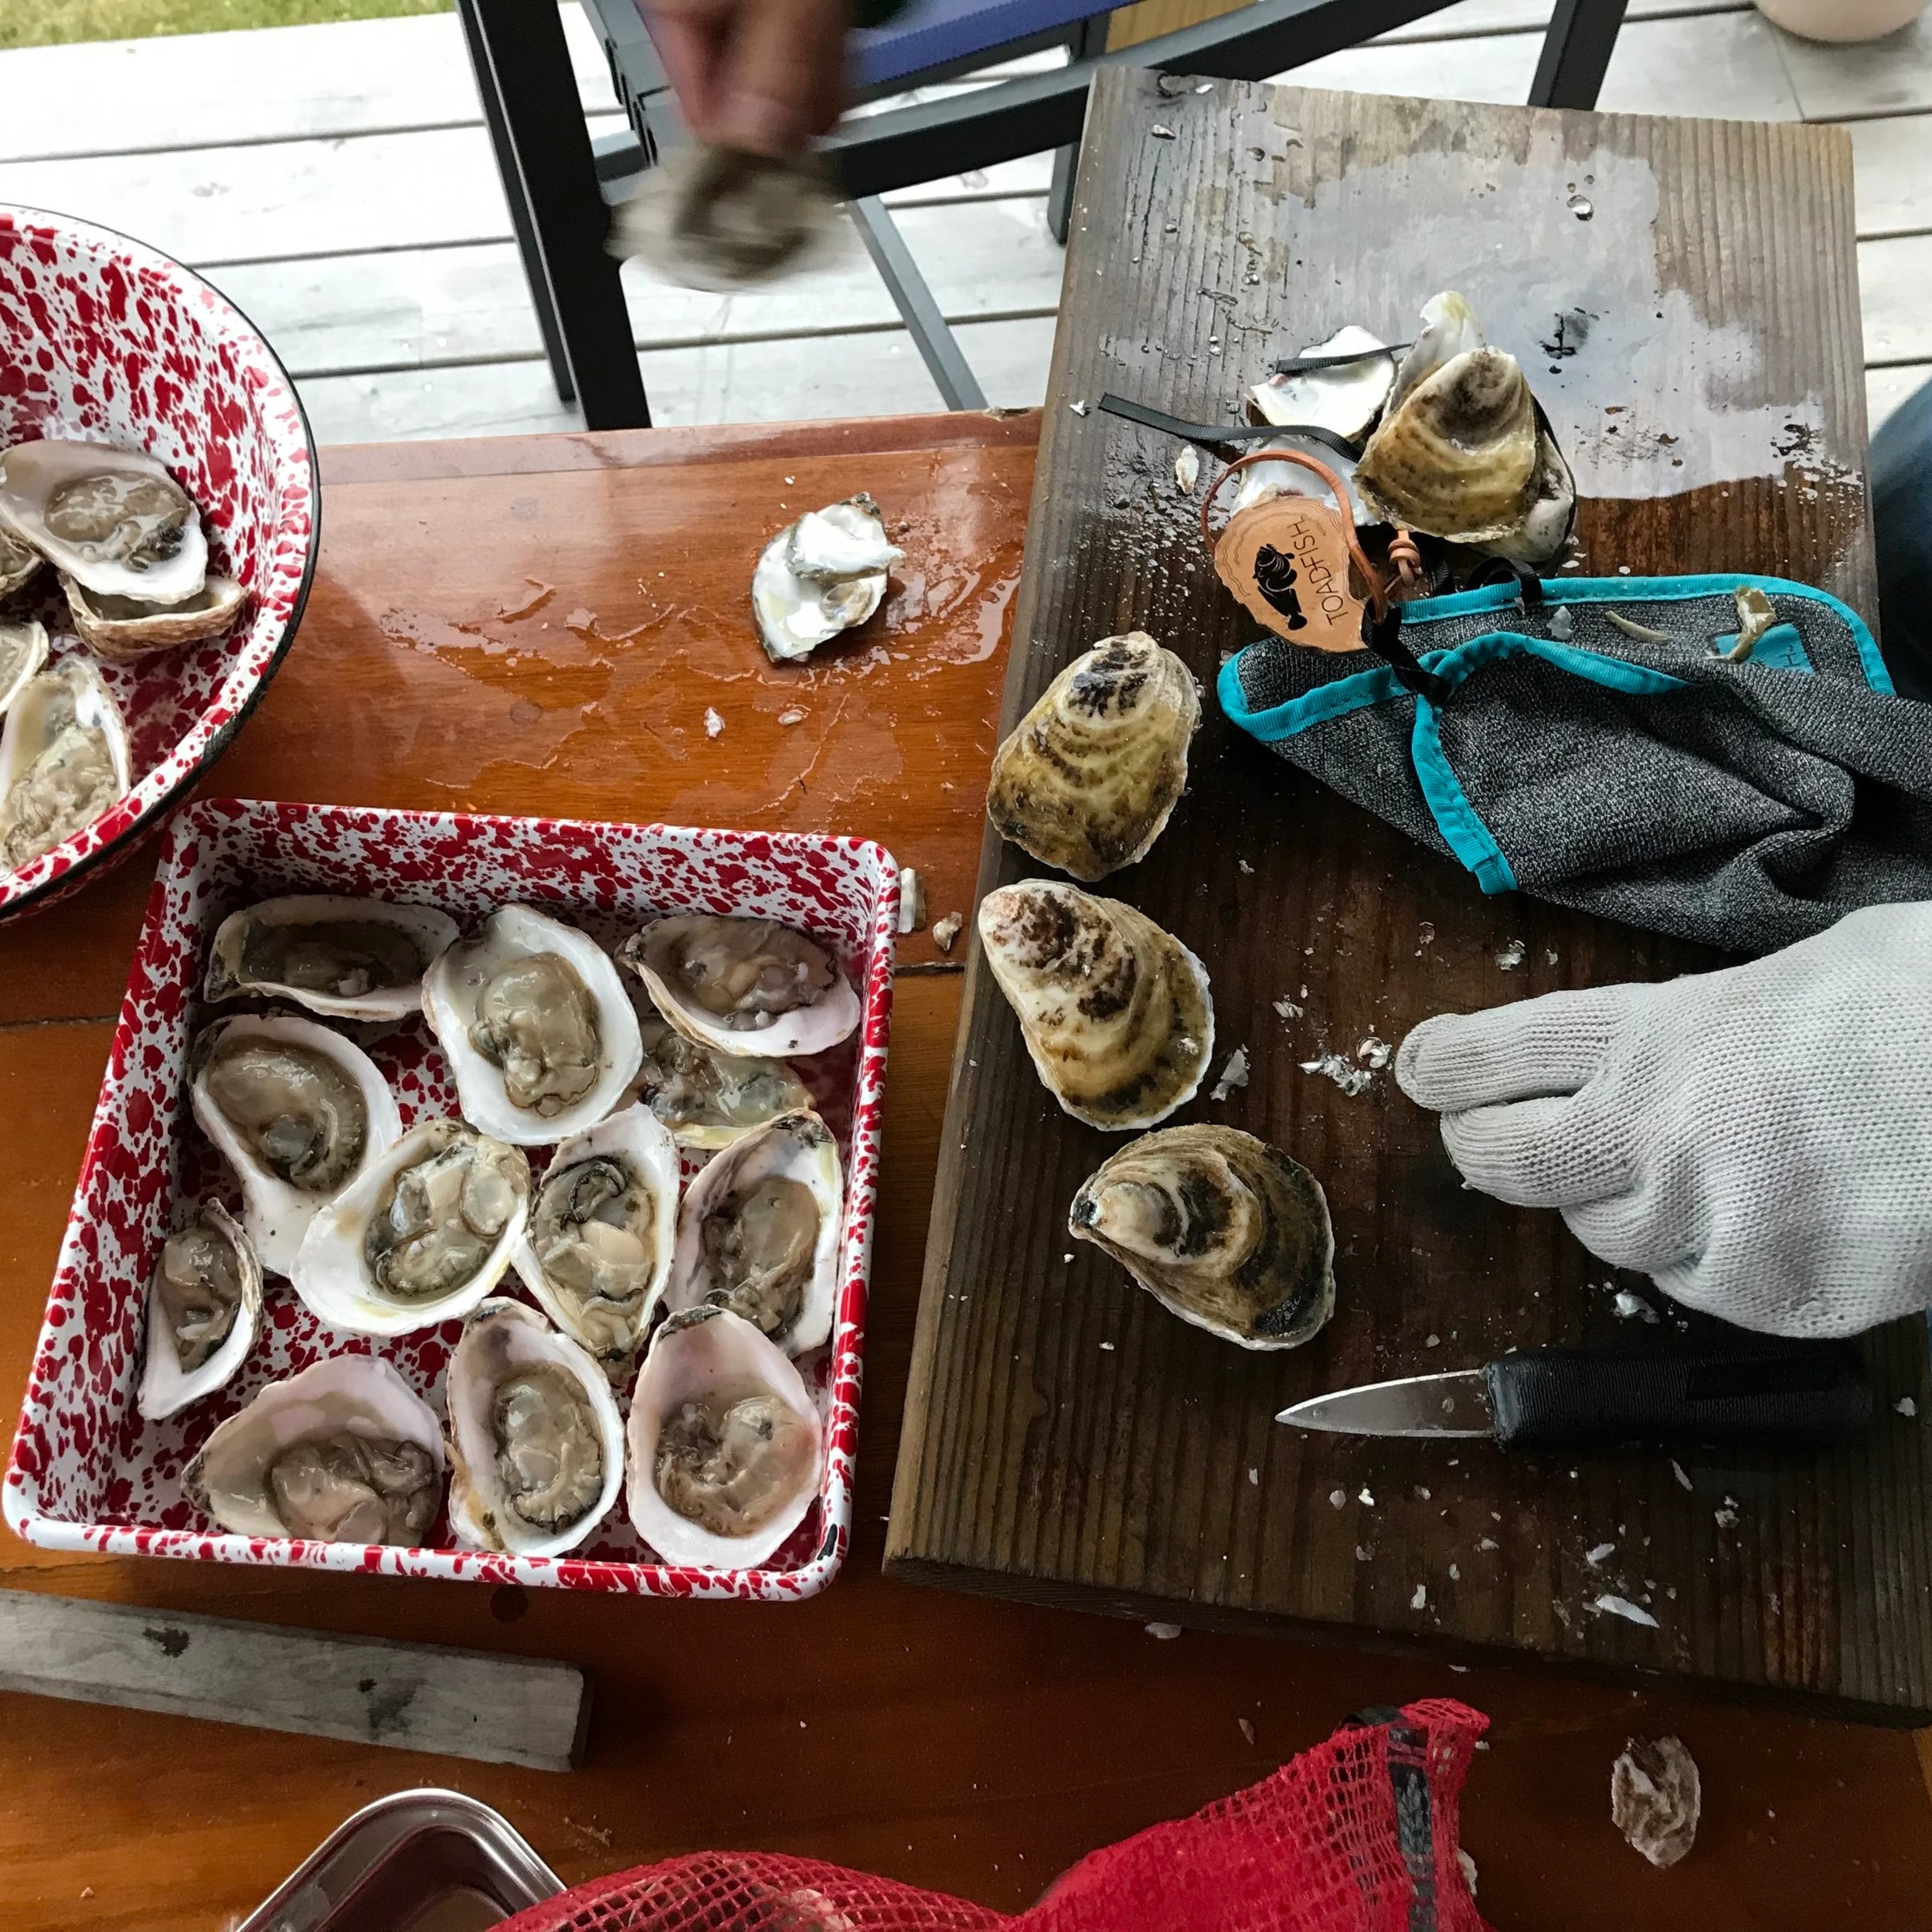 1. Shuck oysters.